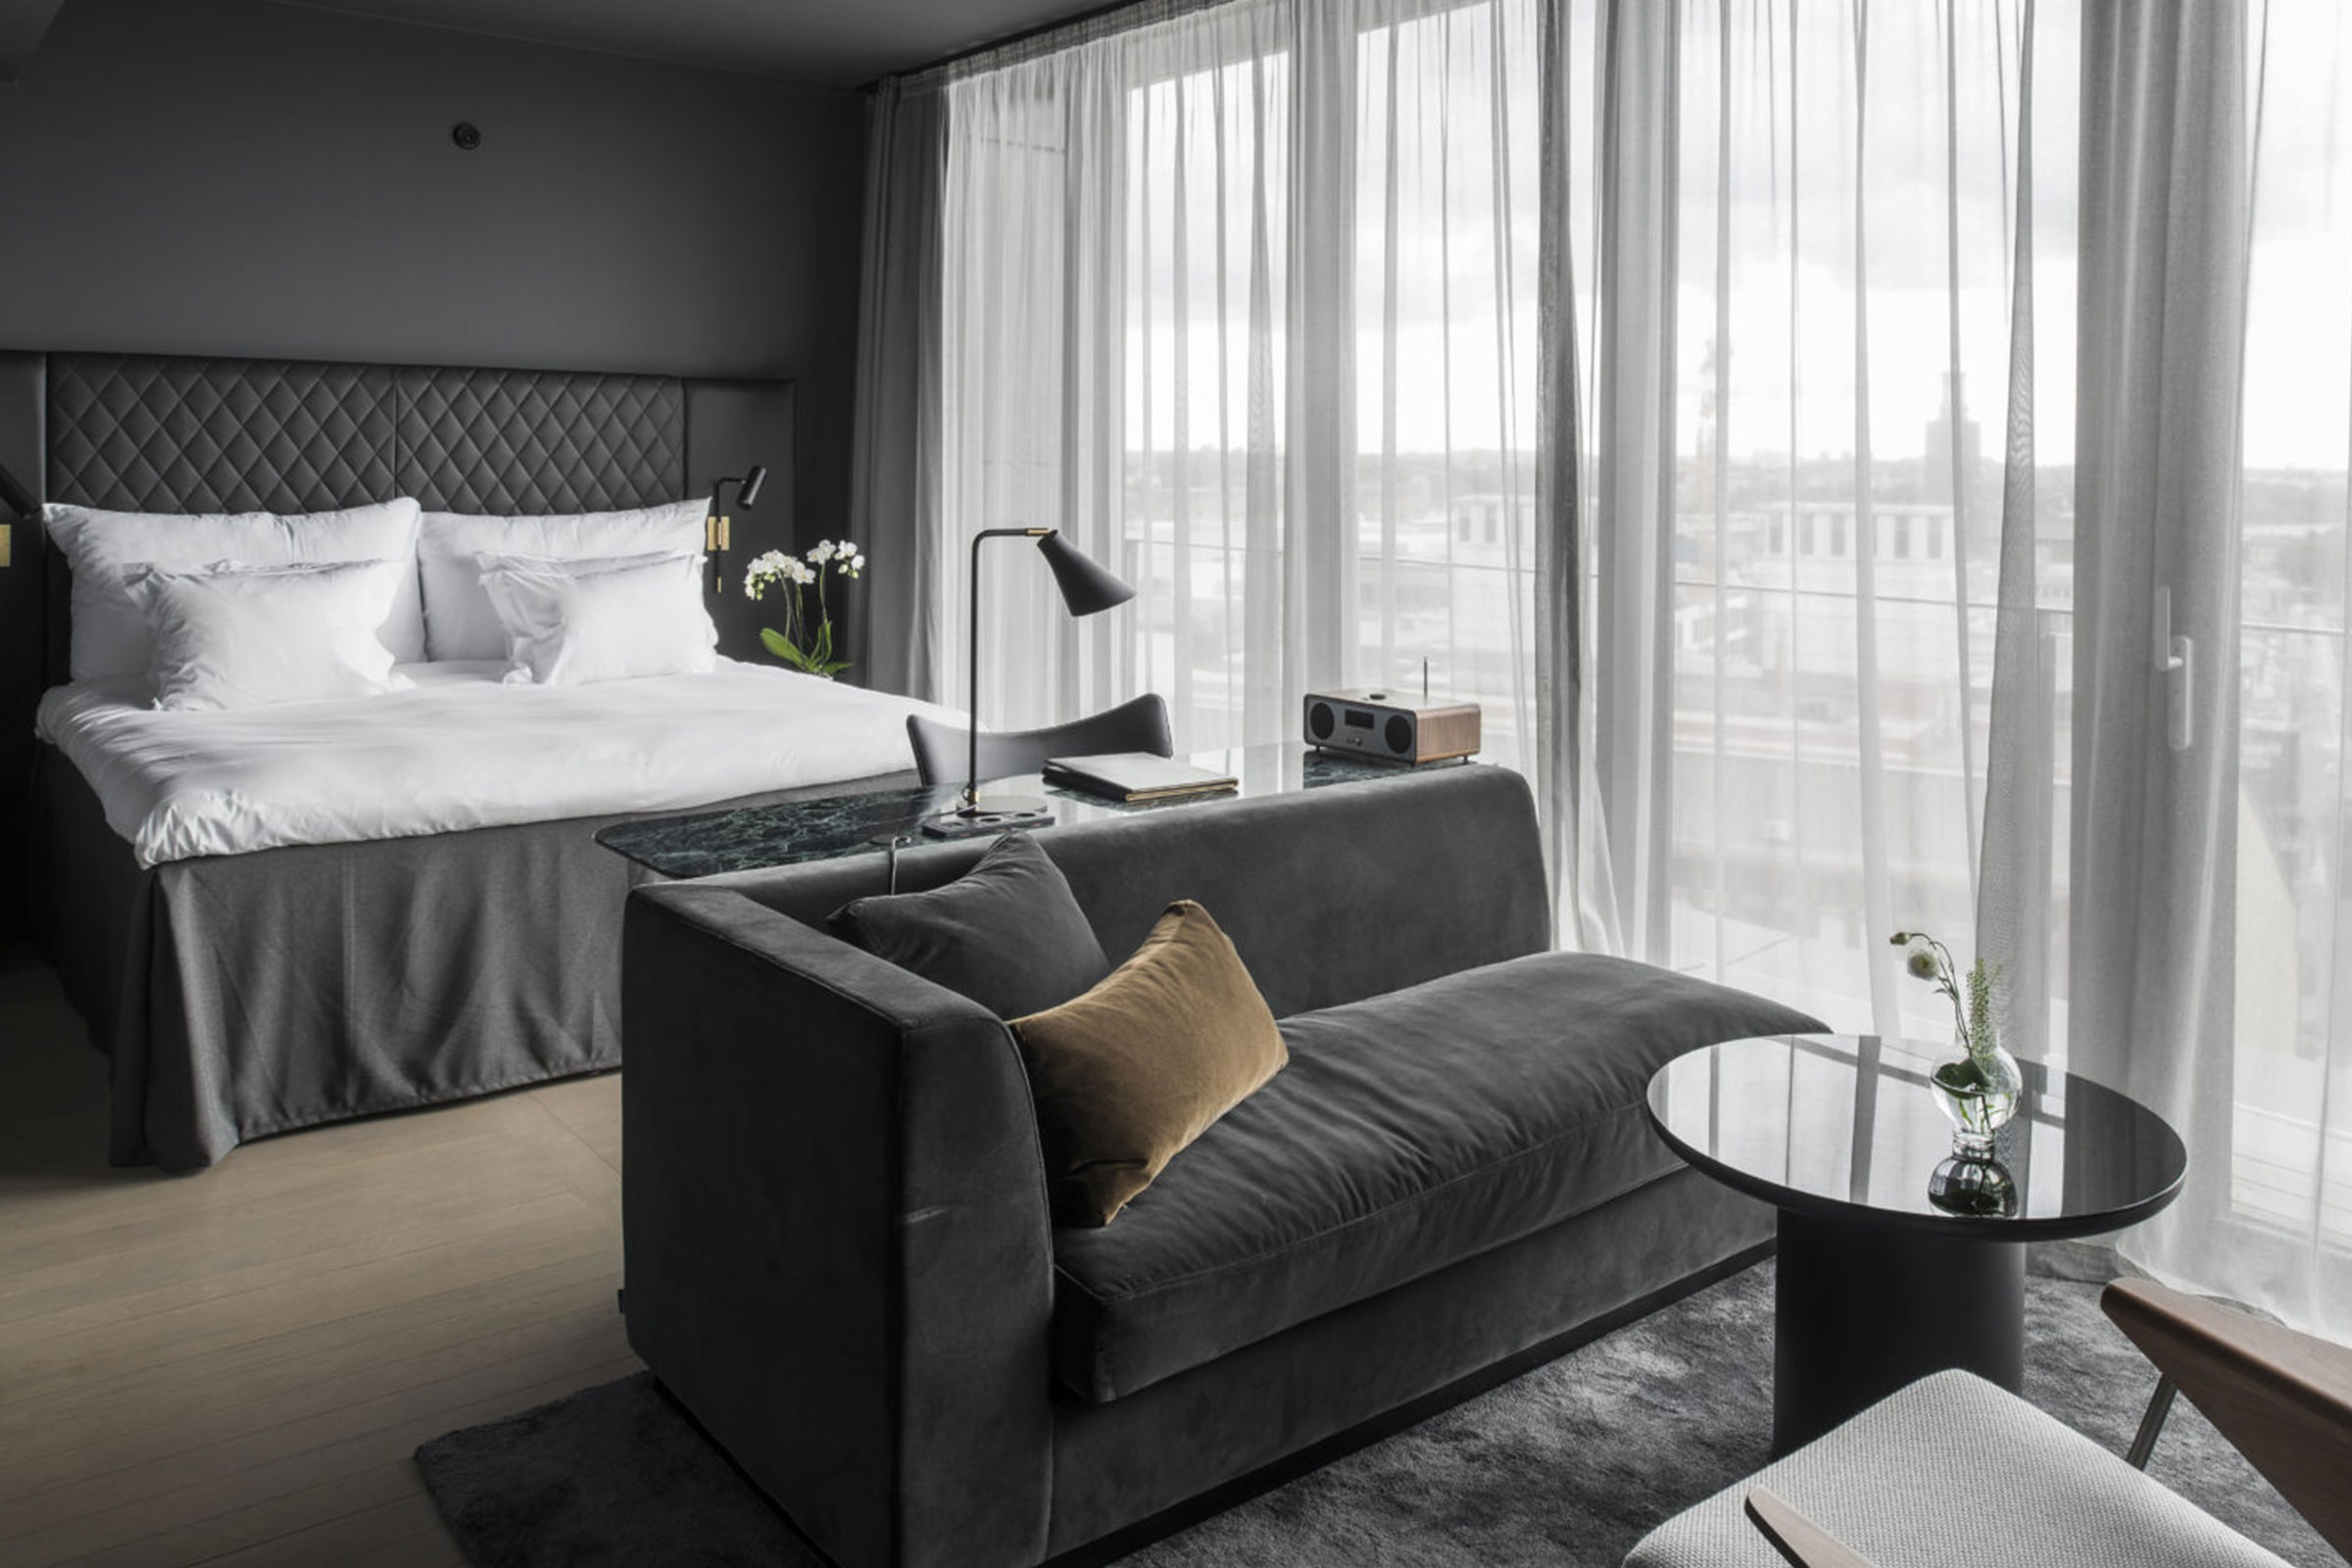 Design Hotel Of The Week: At Six, Stockholm